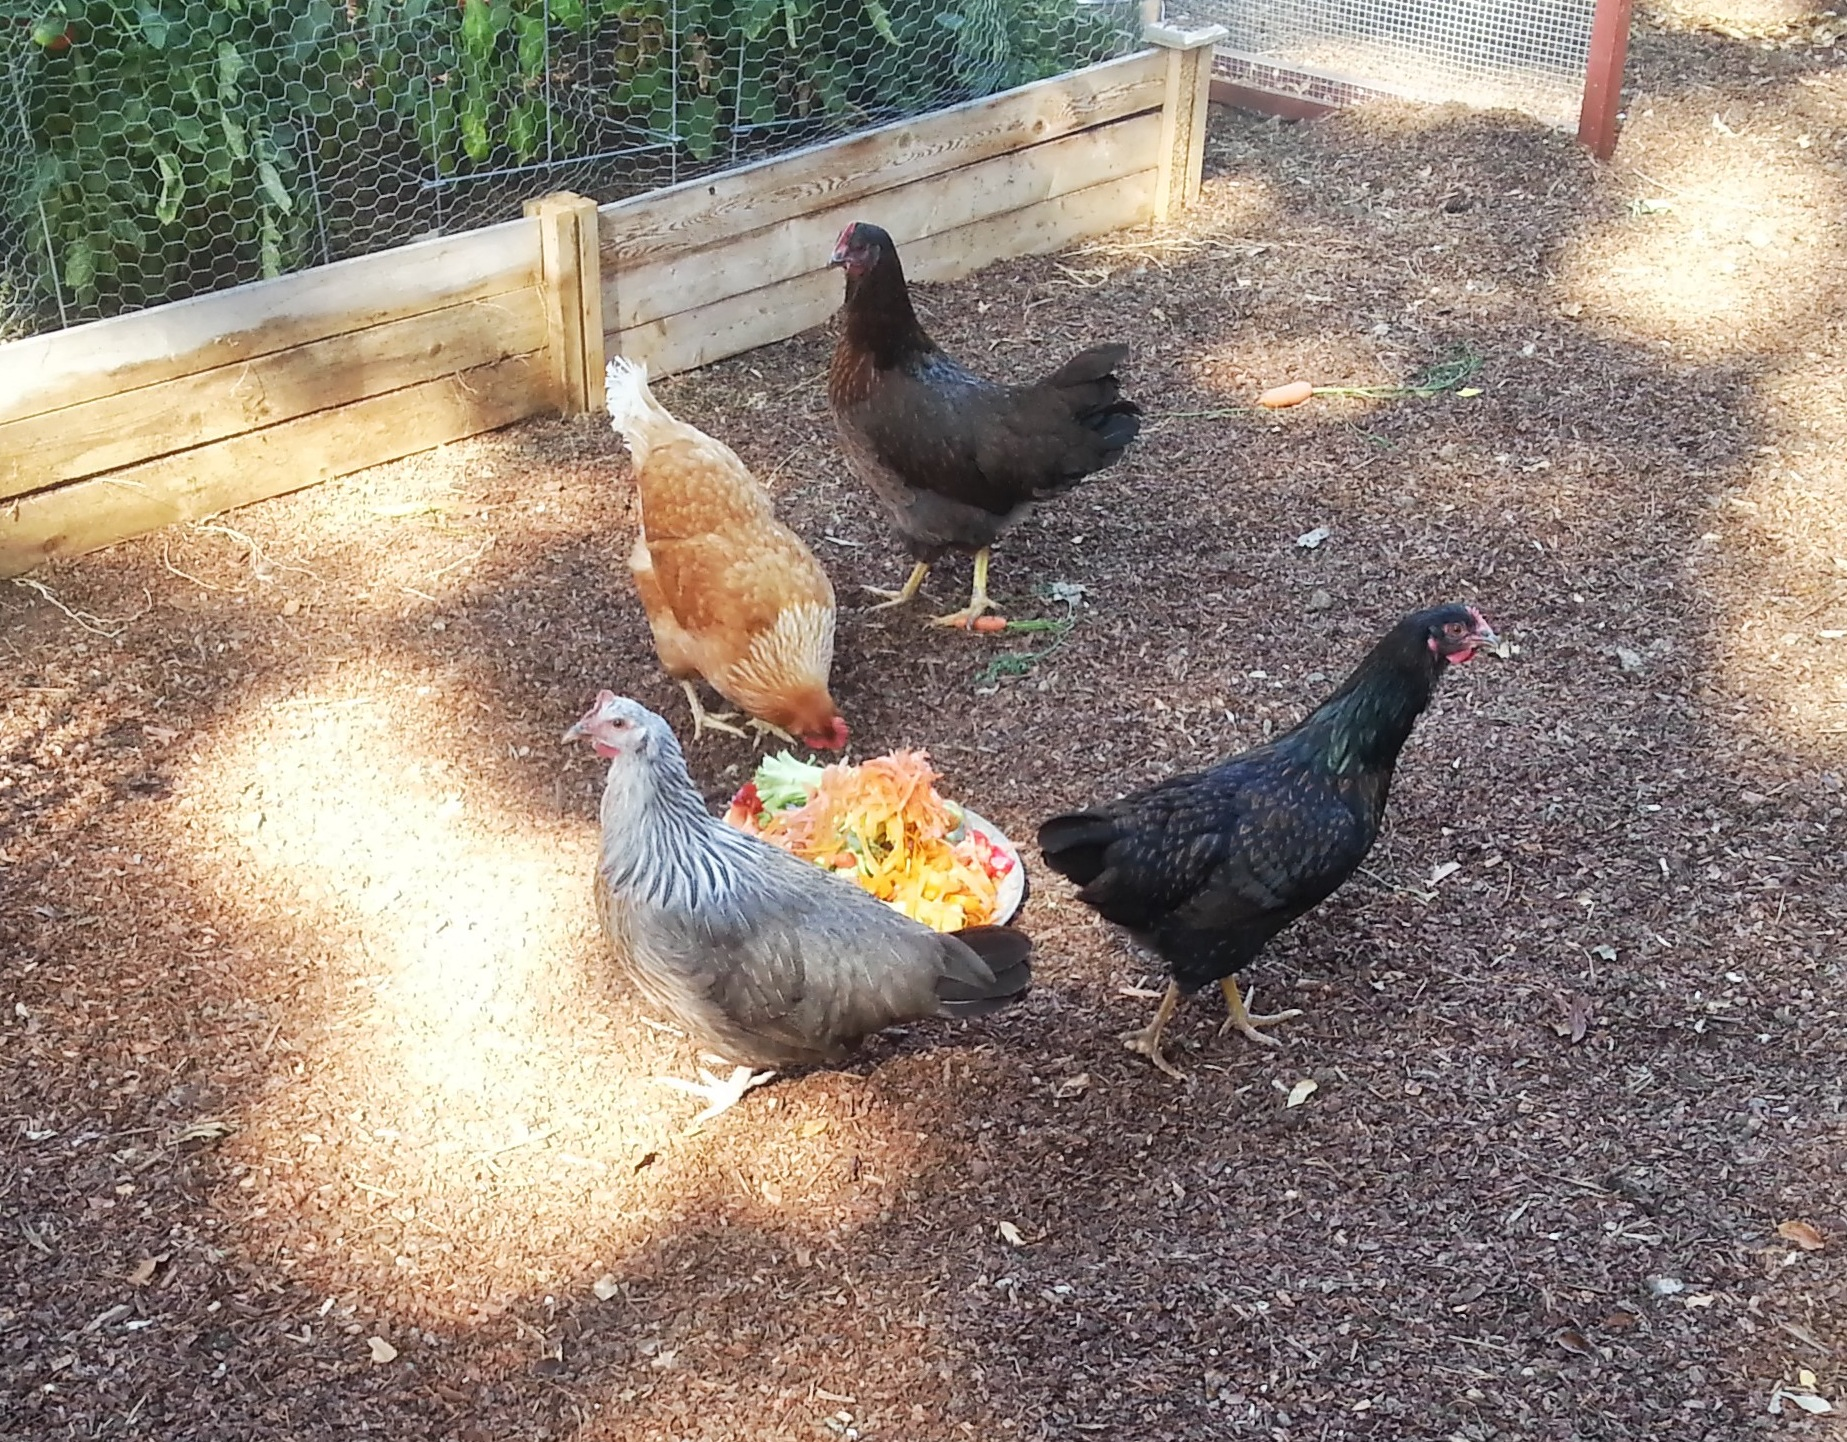 CHICKENS! We get at least one egg per day.